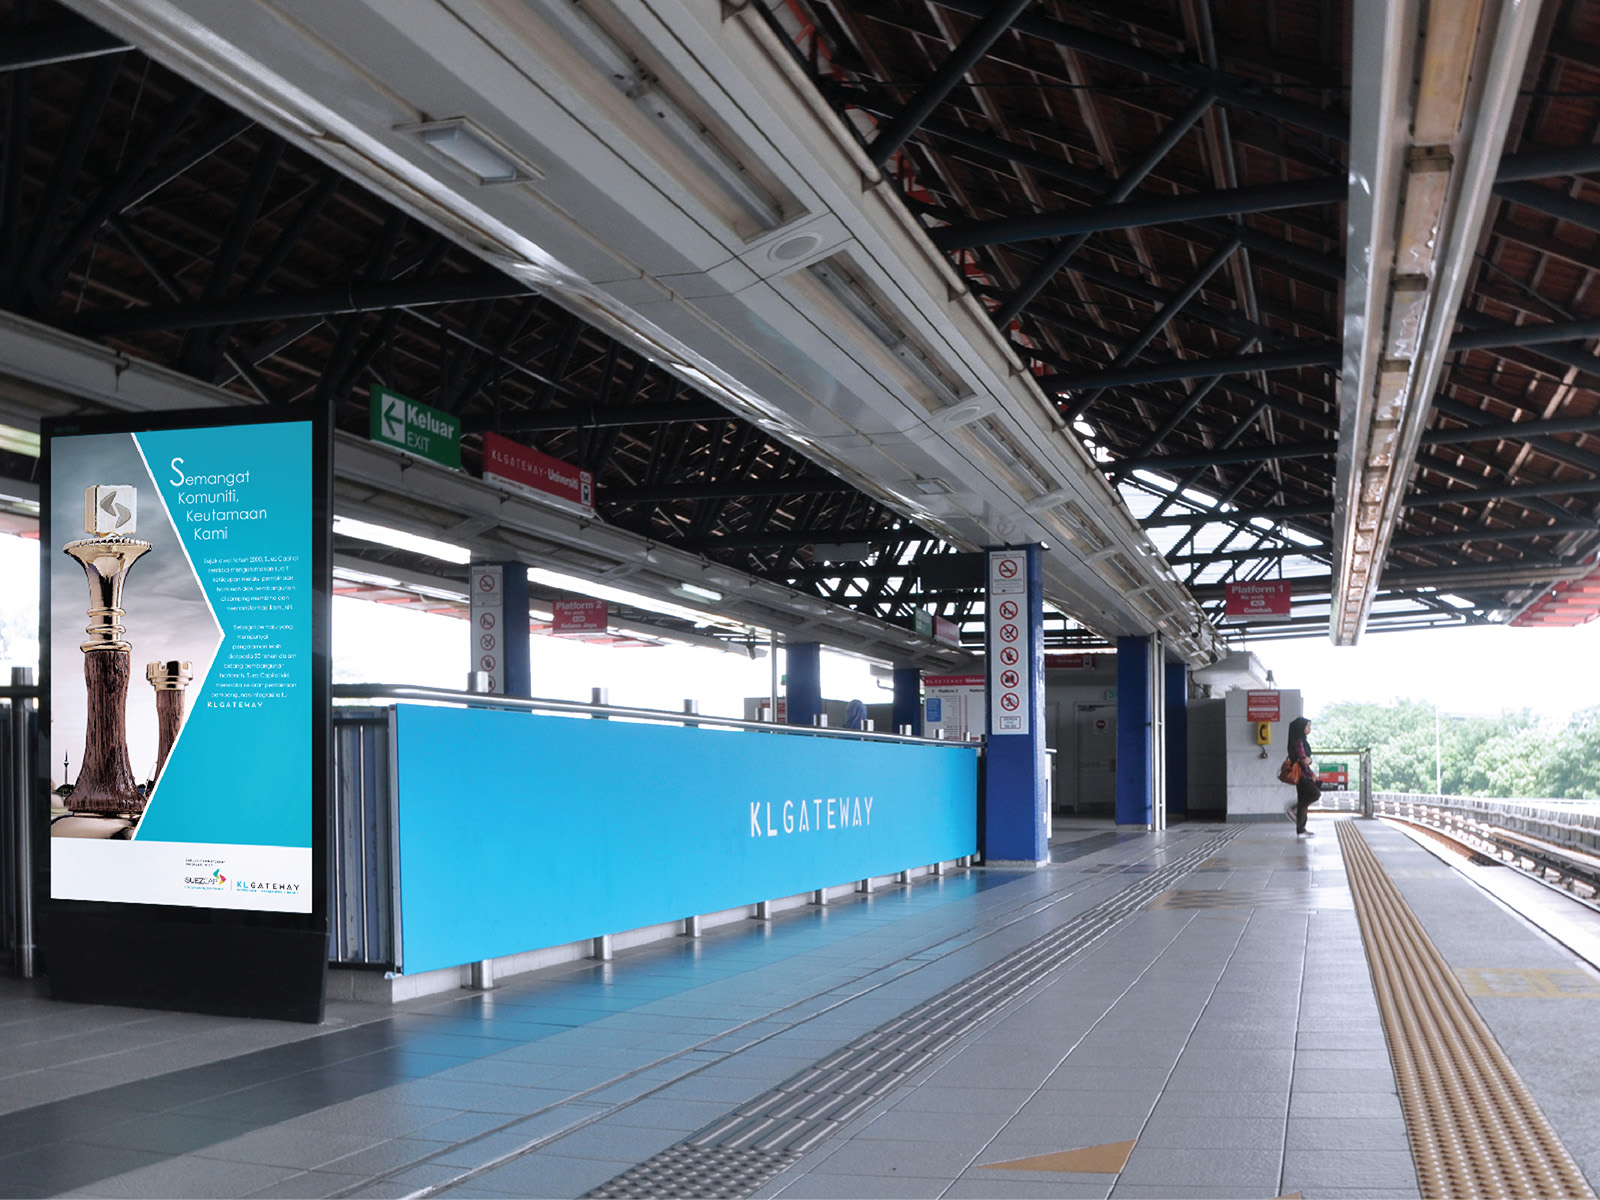 KL Gateway by Suezcap train station brand advertisement takeover with brand ads on handrail panels by the waiting area with digital board ad support